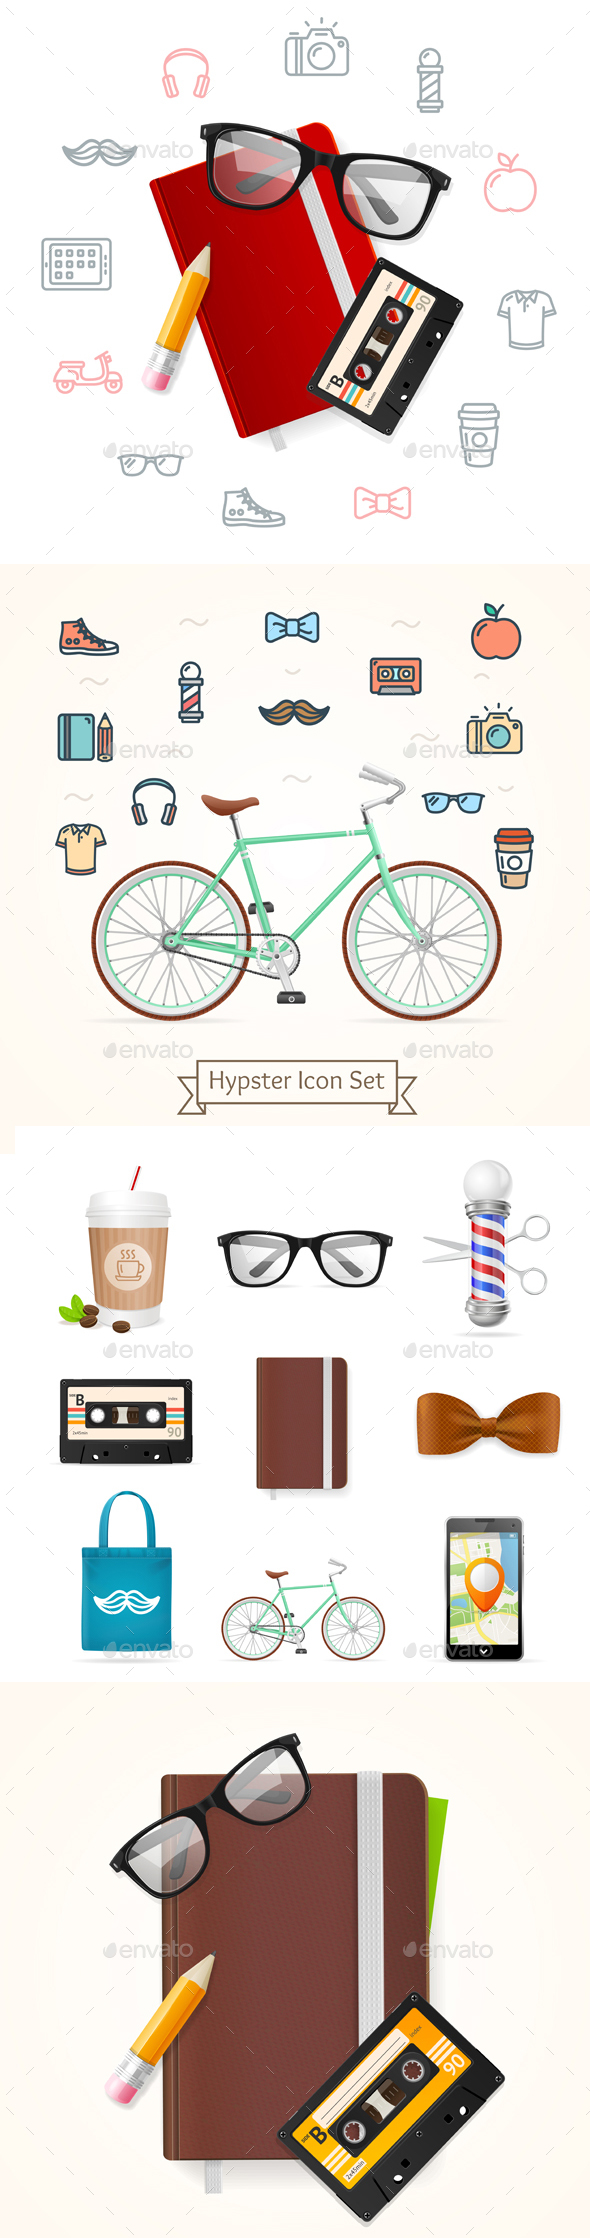 Realistic Hipster Style Icon Color Set - Retro Technology